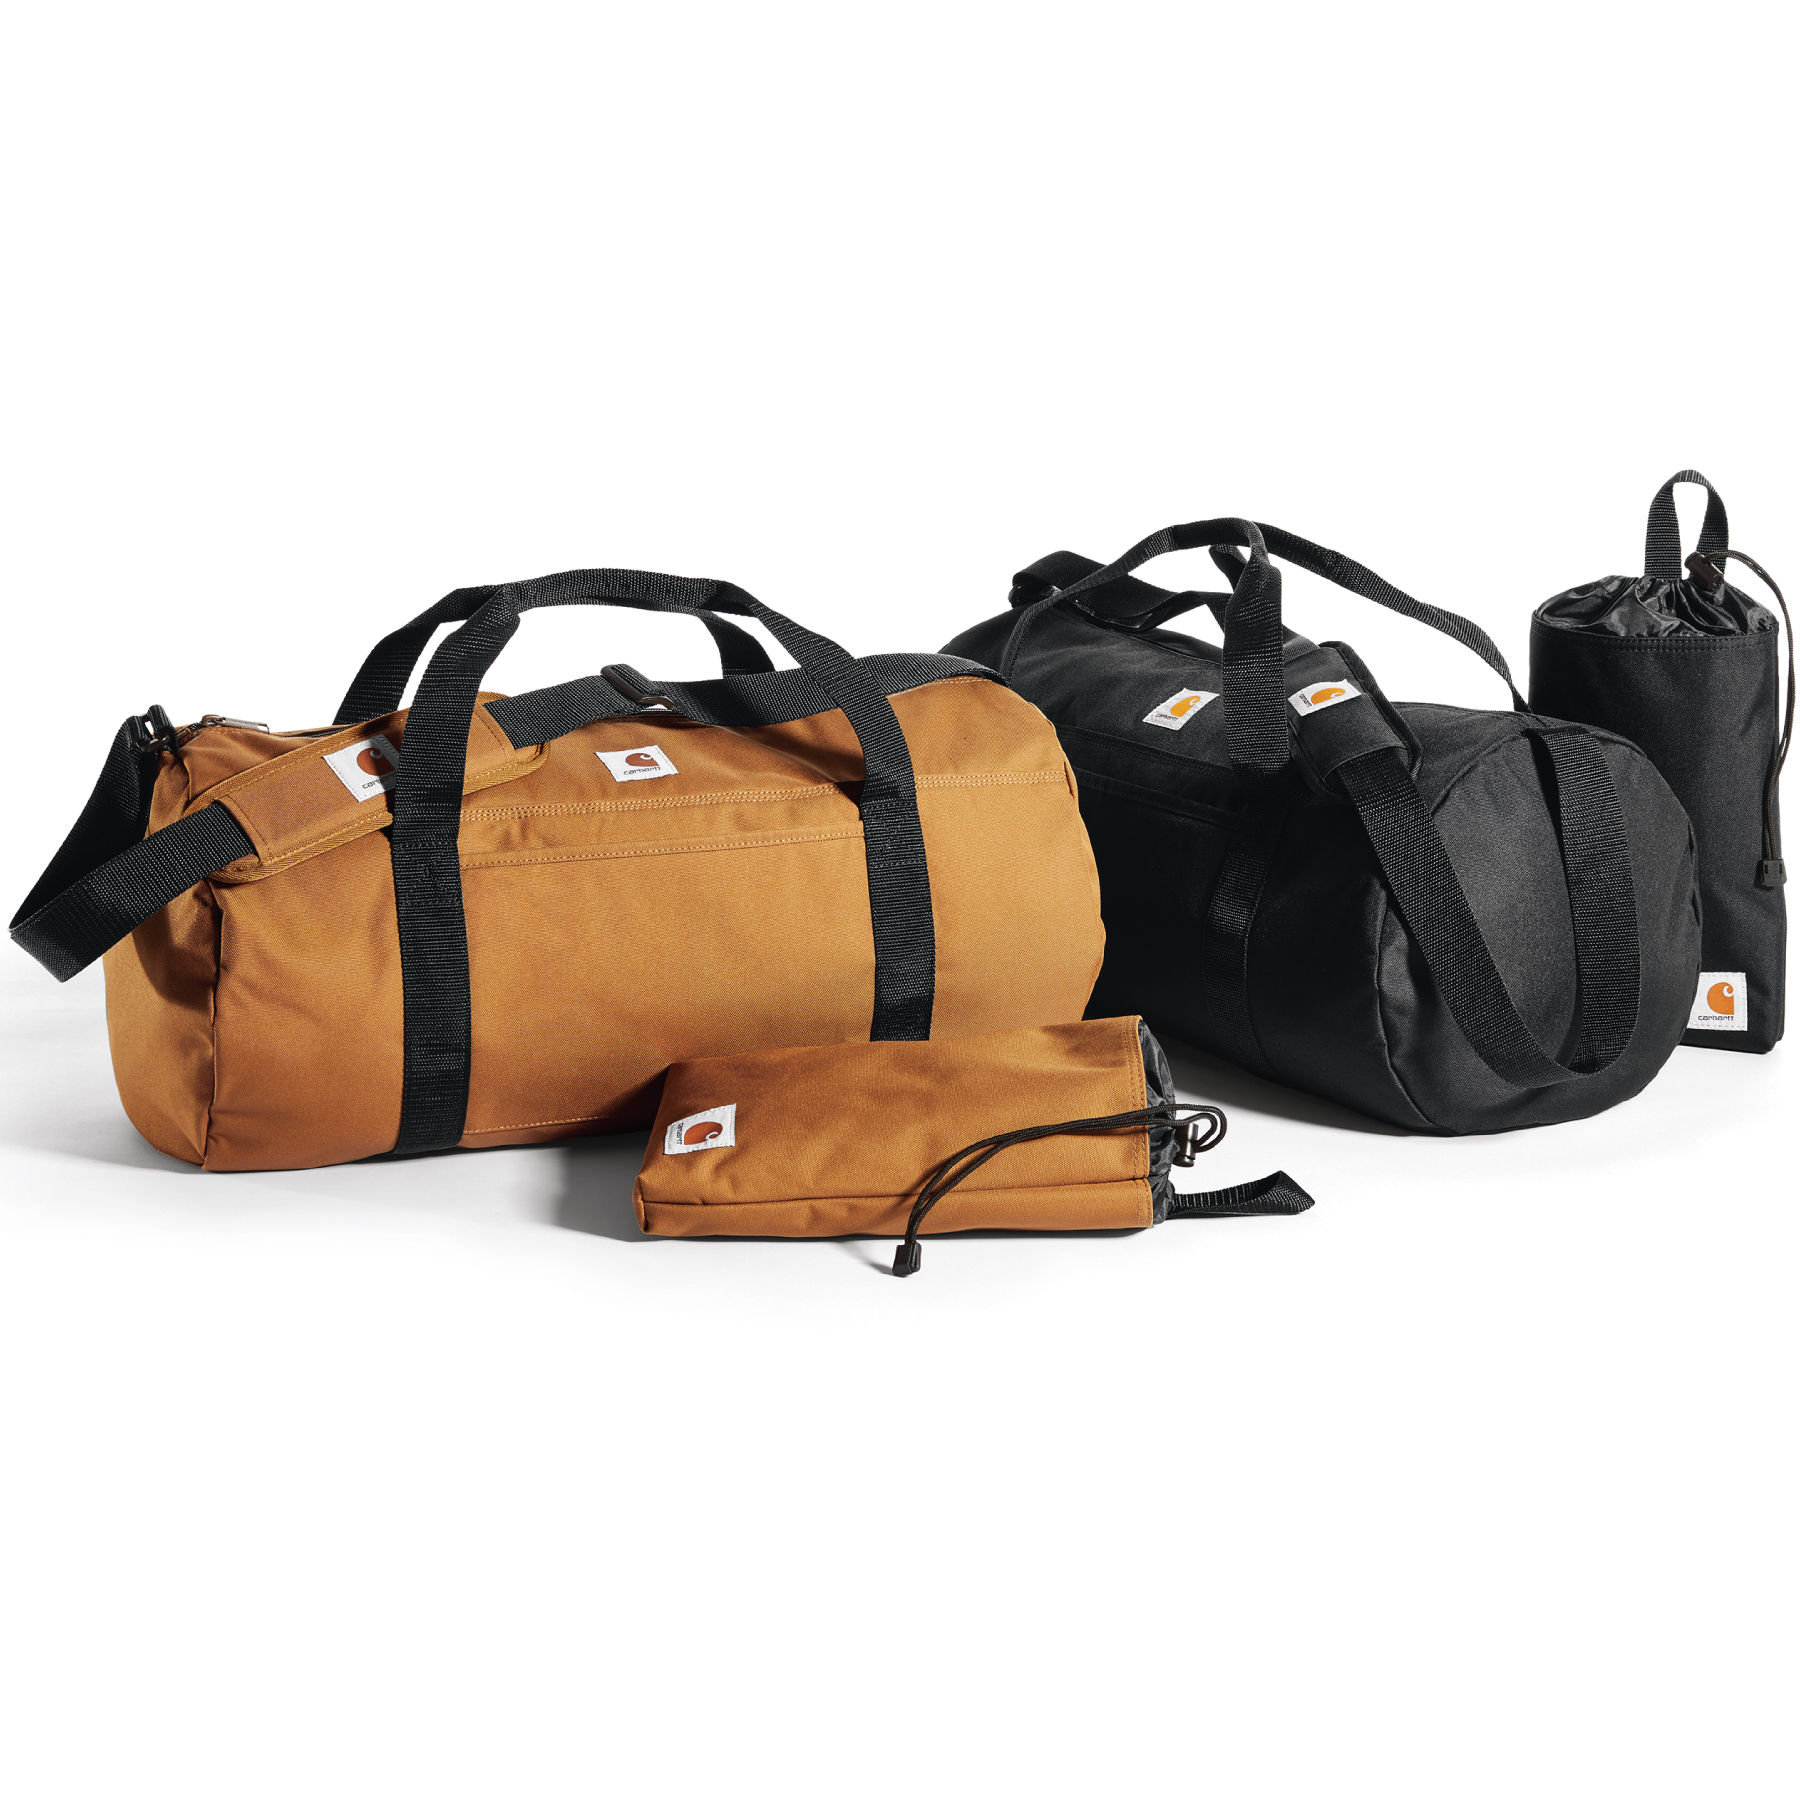 Carhartt® Packable Duffel with Pouch - RCG4907